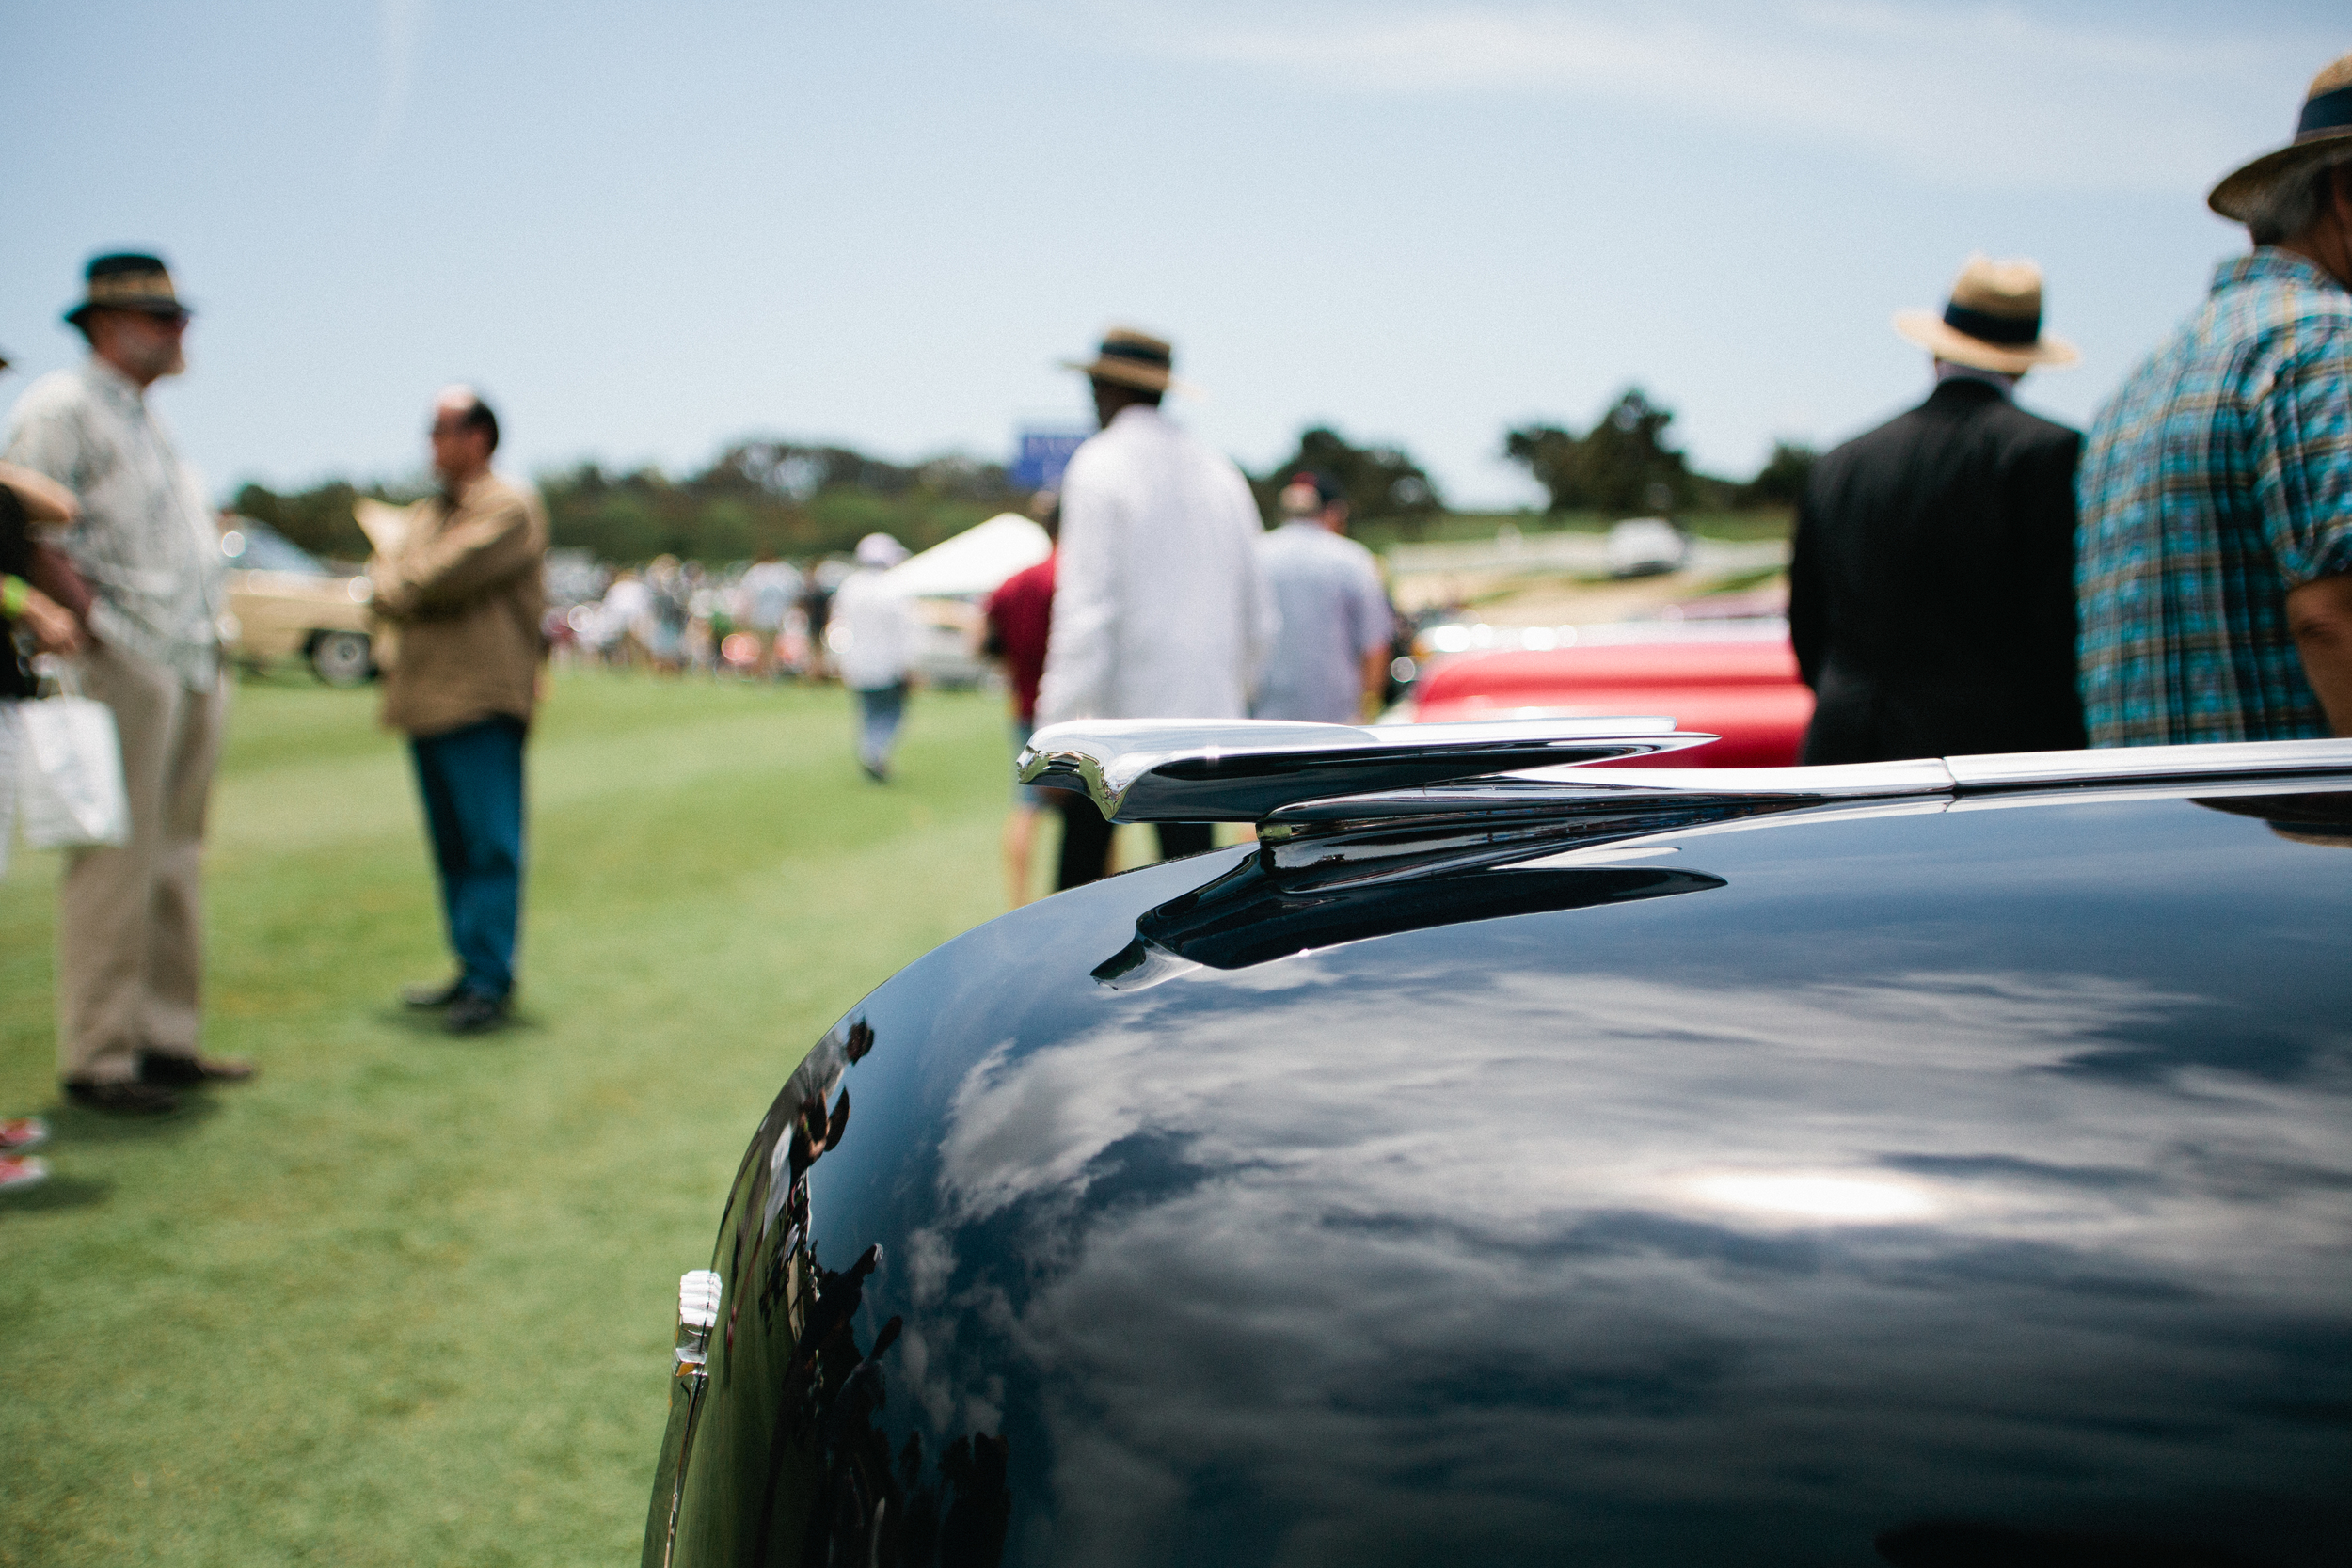 Concours d'Elegance 2013 (2 of 21)